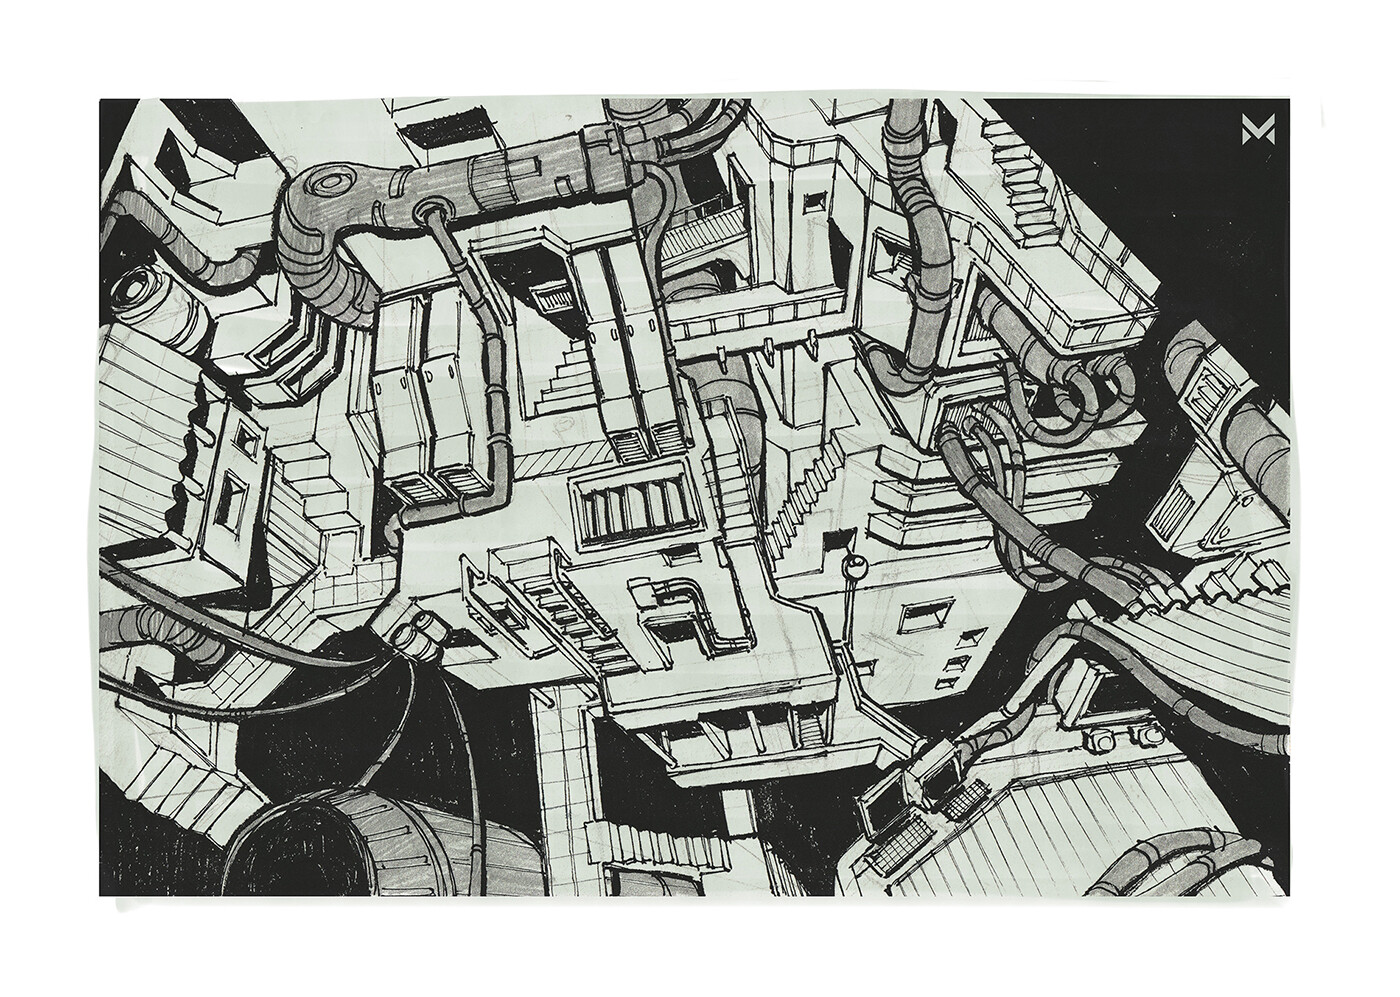 City Structures - inspired by Tsutomu Niheis manga epic 'Blame!'